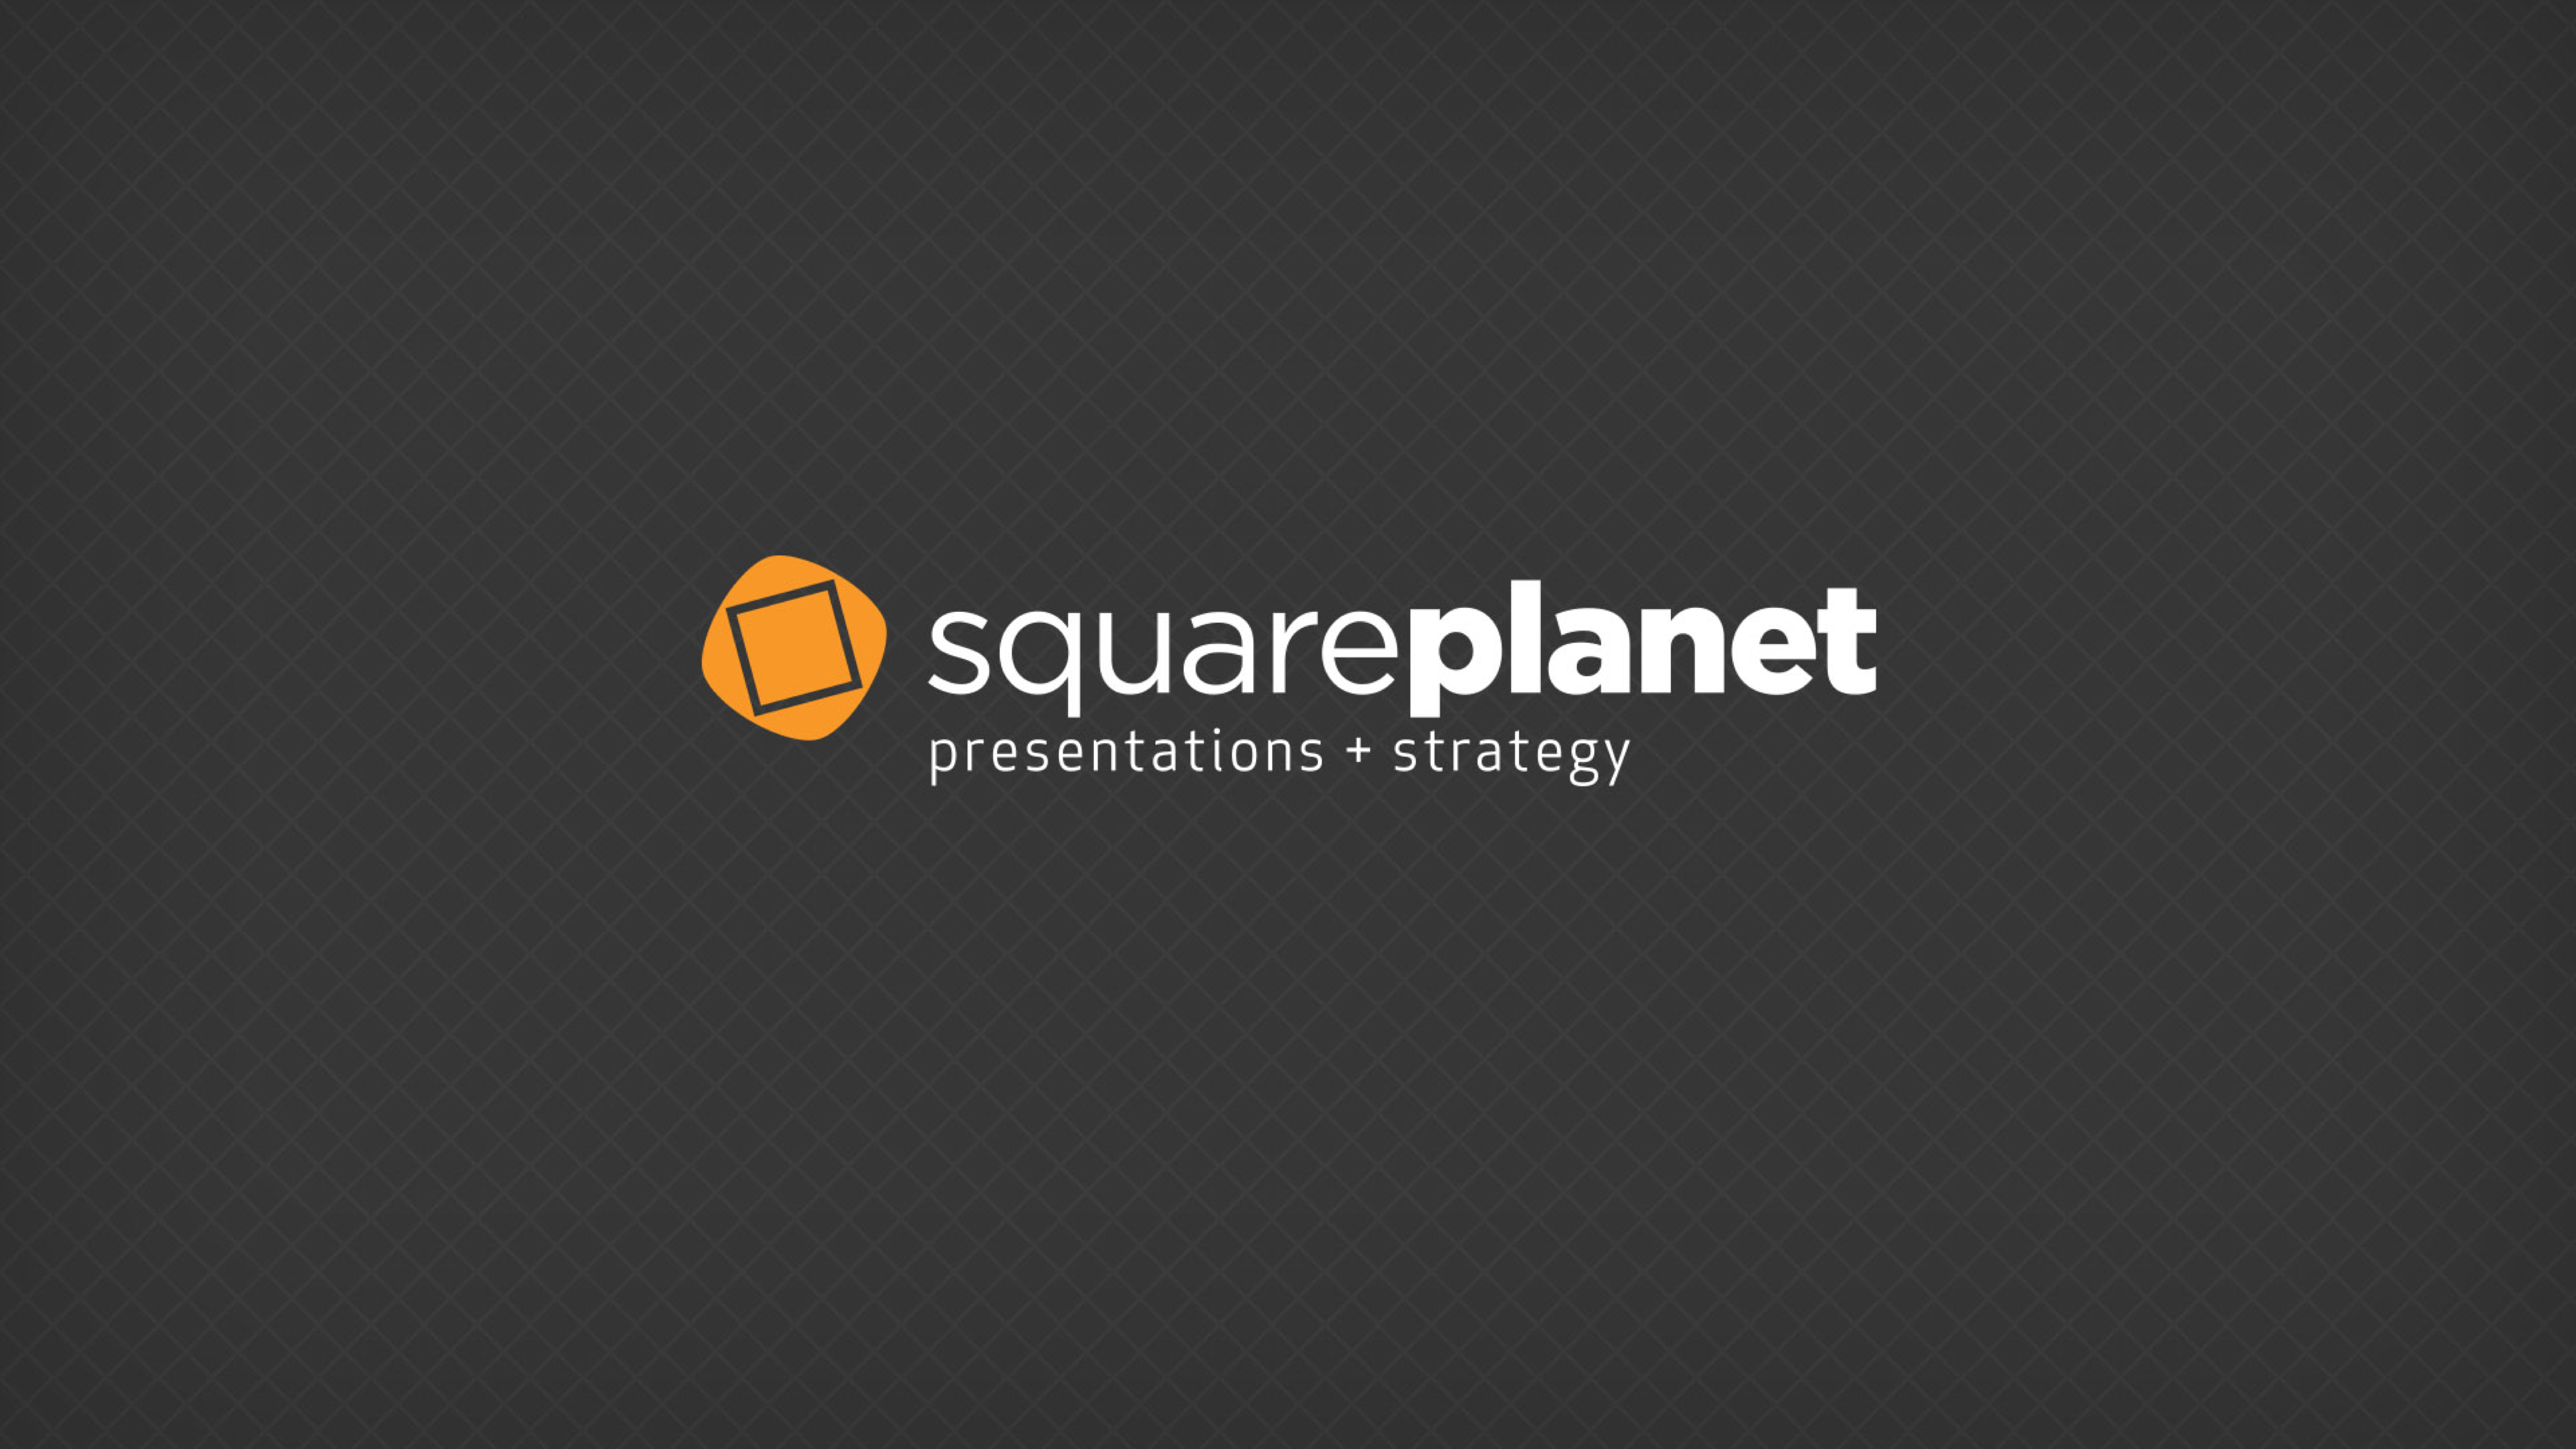 Where Does the Name 'SquarePlanet' Come From Anyway?